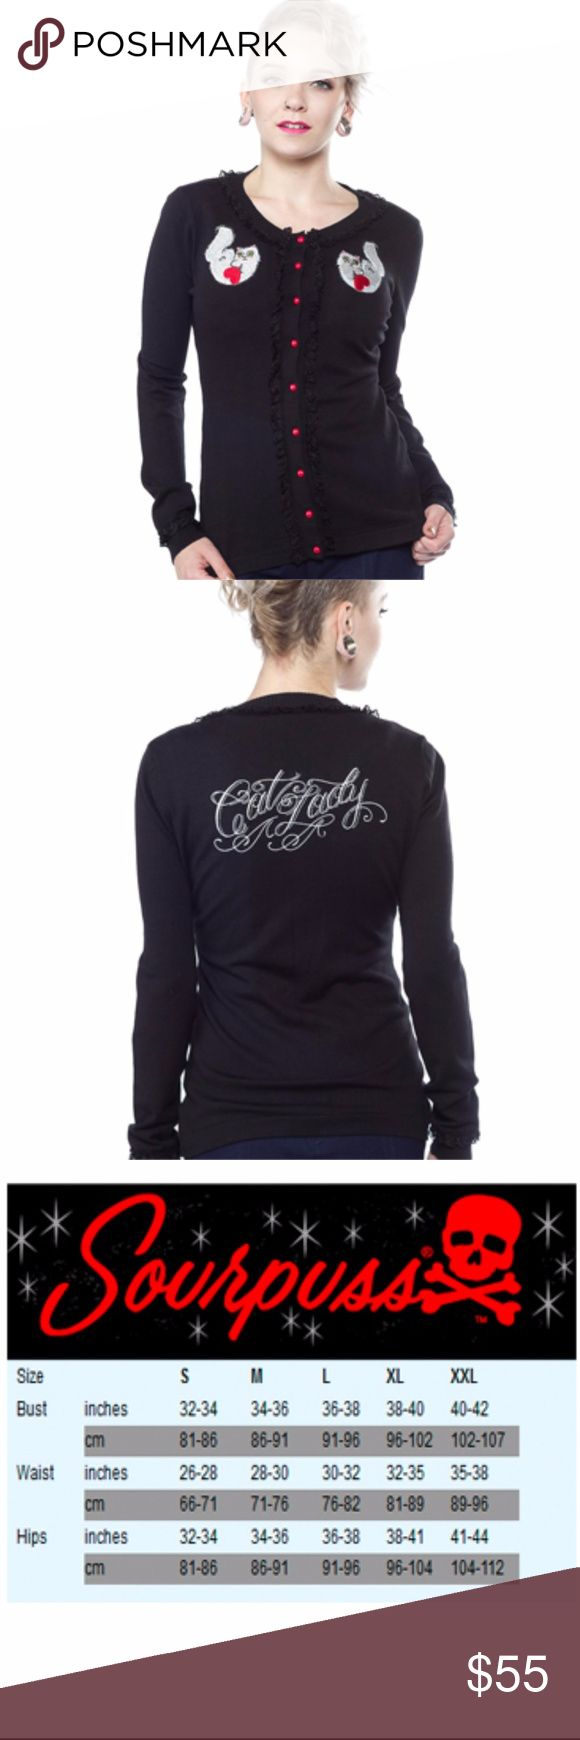 """Cat Lady Tattoo Cardigan Pinup Rockabilly This black Viscose cardigan features kitten emboideries on the front with """"Cat Lady"""" printed on the back Features original artwork from Stacey Martin-Smith This cardigan is also trimmed with soft black lace for a final touch. 100% Viscose Made By Sourpuss Sourpuss Sweaters Cardigans"""